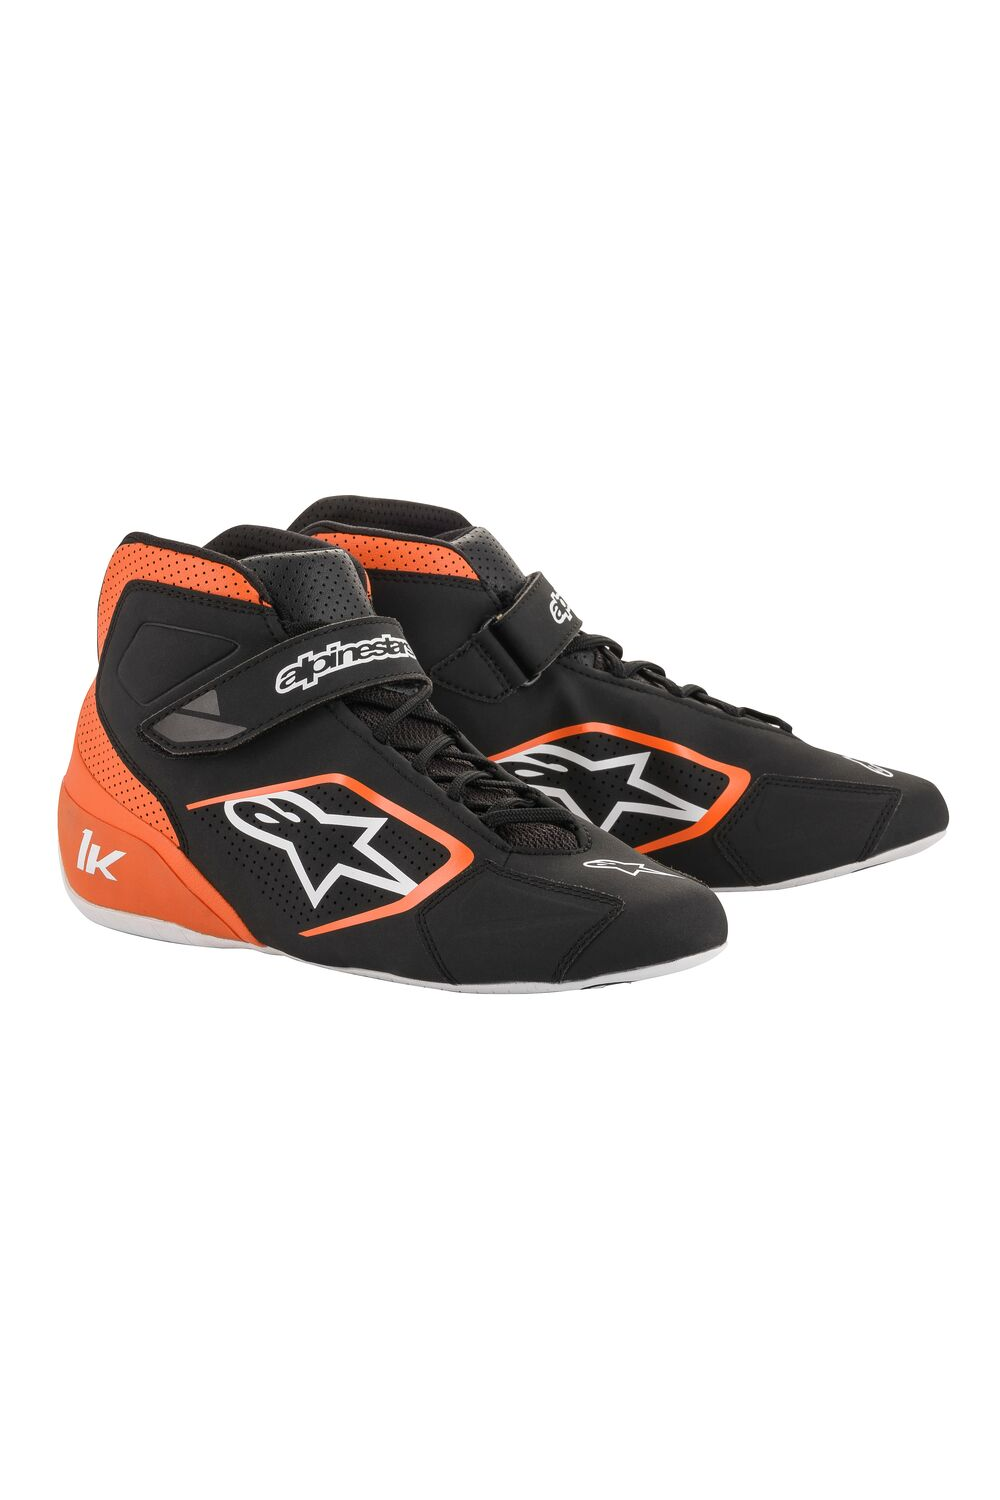 Alpinestars Copy of Tech-1 K Shoe Black Fushia